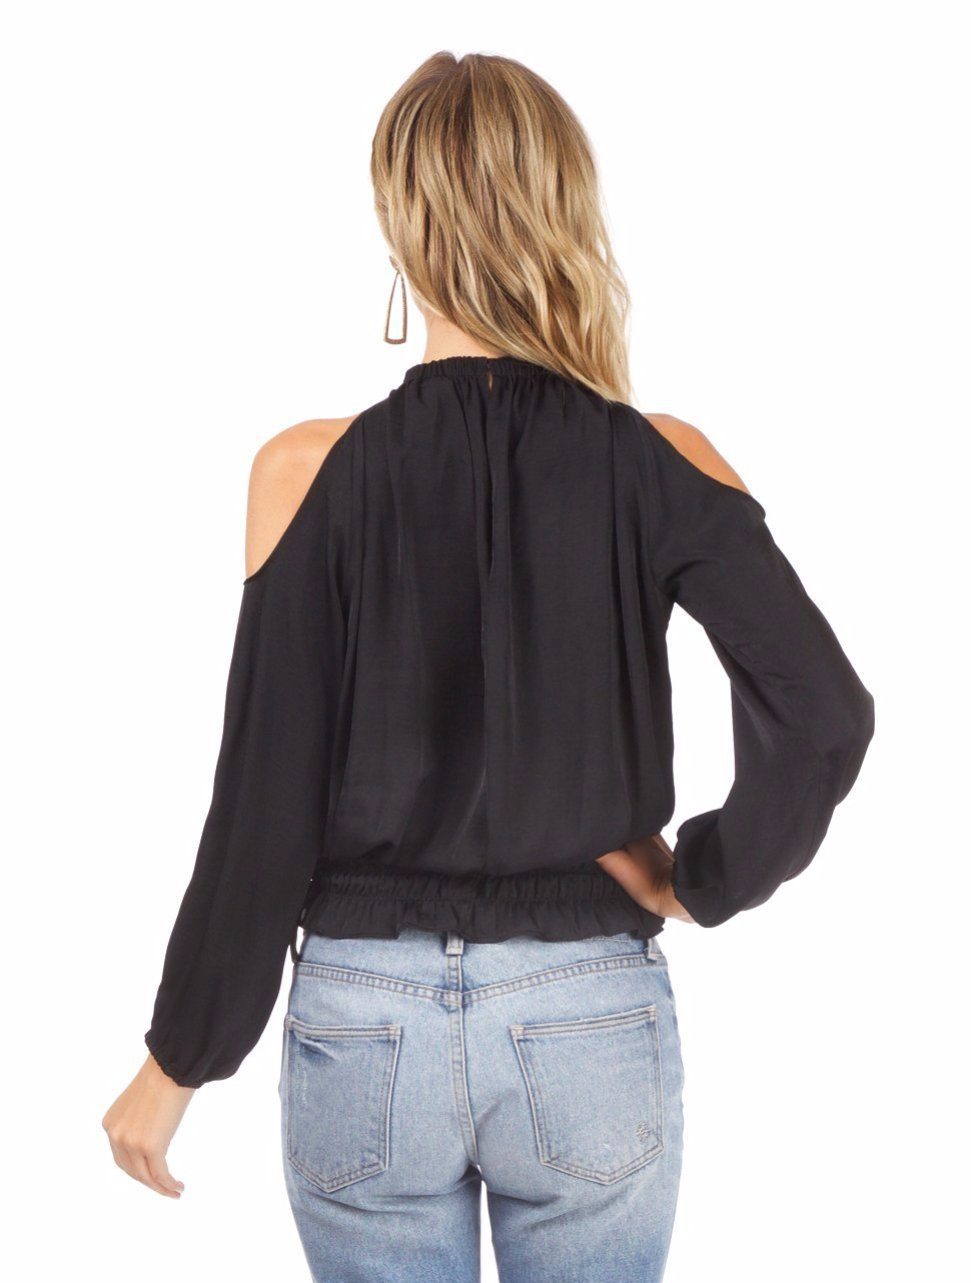 Women wearing a top rental from AQUA called Cold Shoulder Top